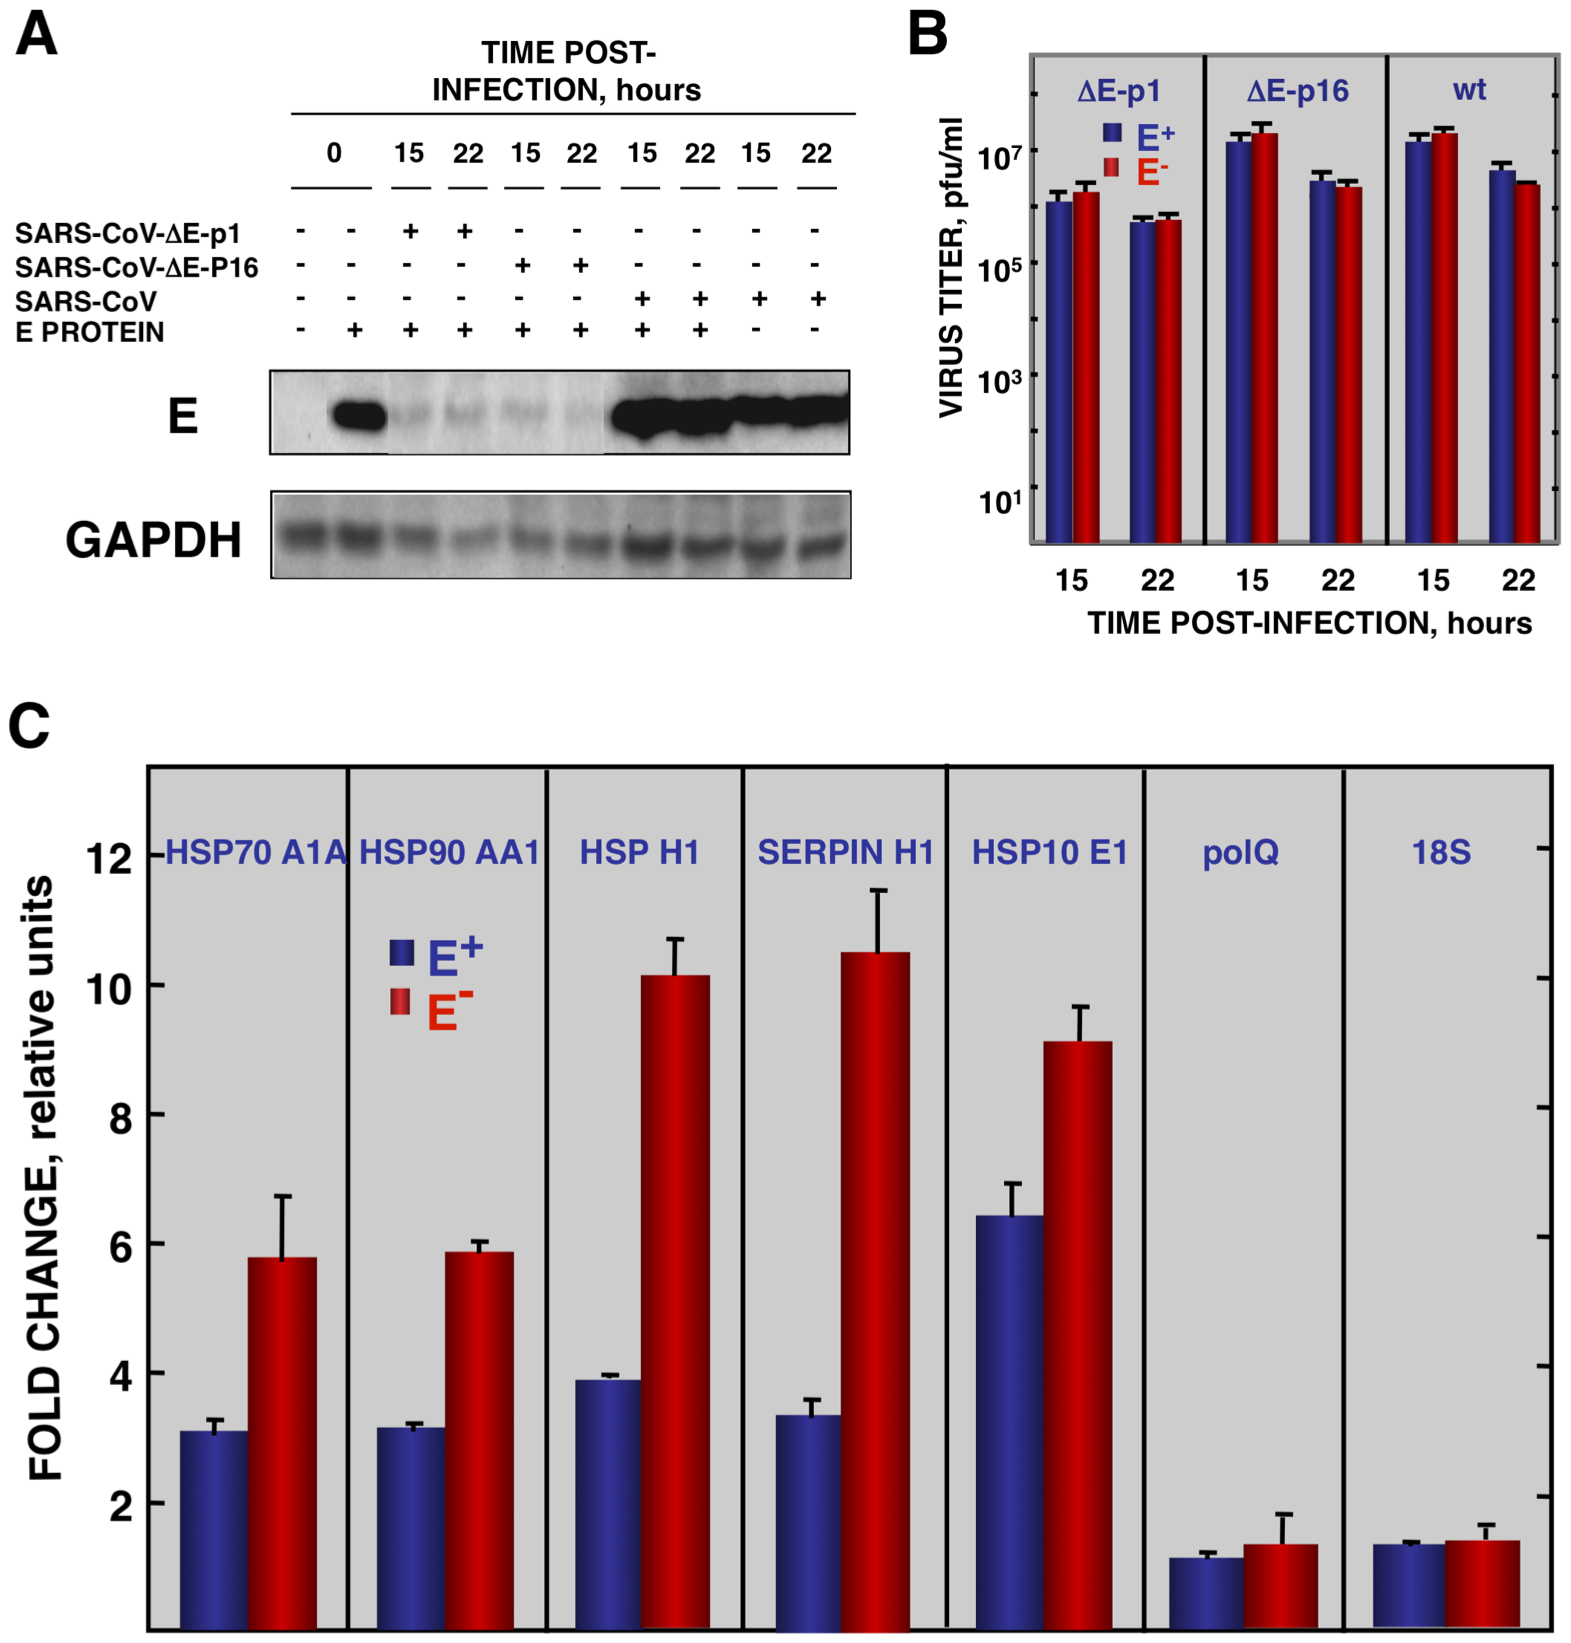 Effect of SARS-CoV E protein on stress induced by SARS-CoV infection.